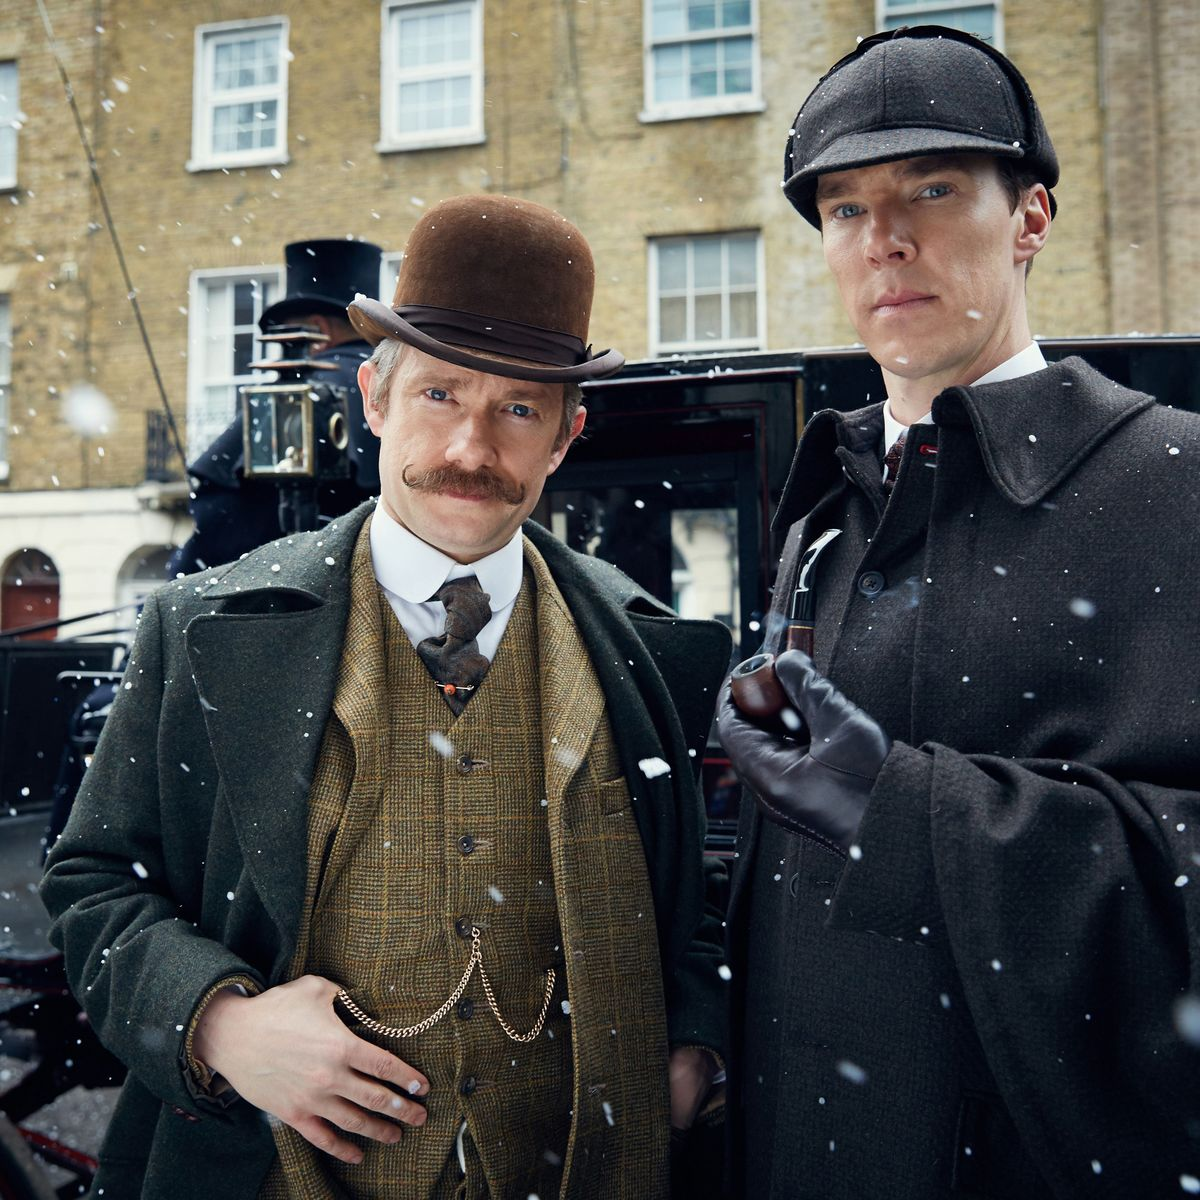 Sherlock-SpecialPHOTO-EMBARGOED-FOR-USE-UNTIL-1500-BST-3PM-British-Summer-Time-ON-241015-24th-October-2015SherlockXS51MB.jpg